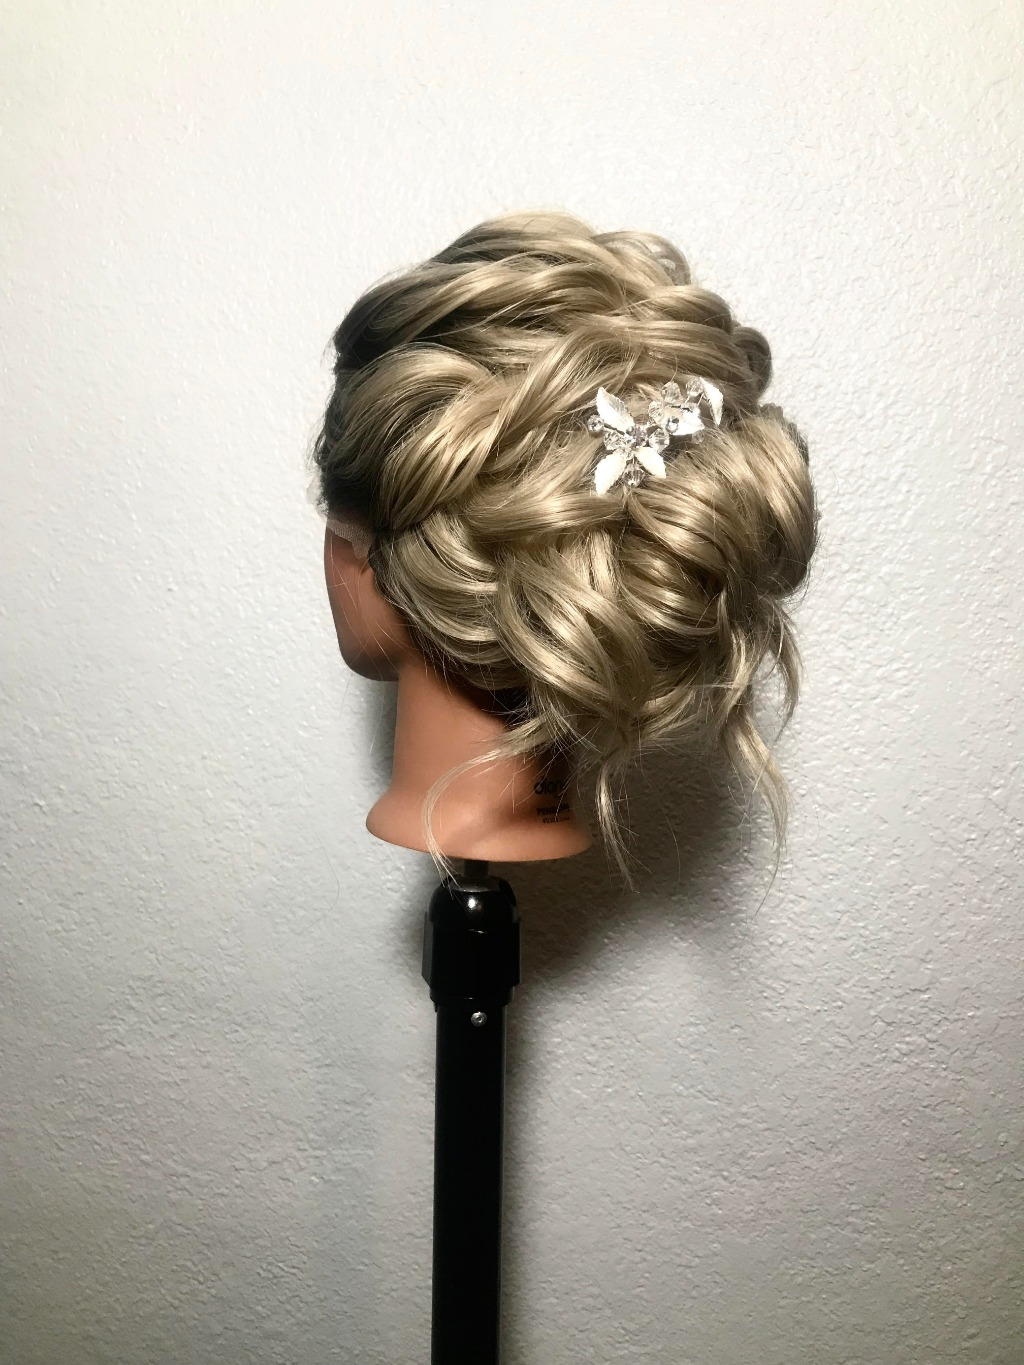 Trends for the 2020 wedding season are showing soft, whimsical textured. When bringing an inspiration photo to a hair trial, make